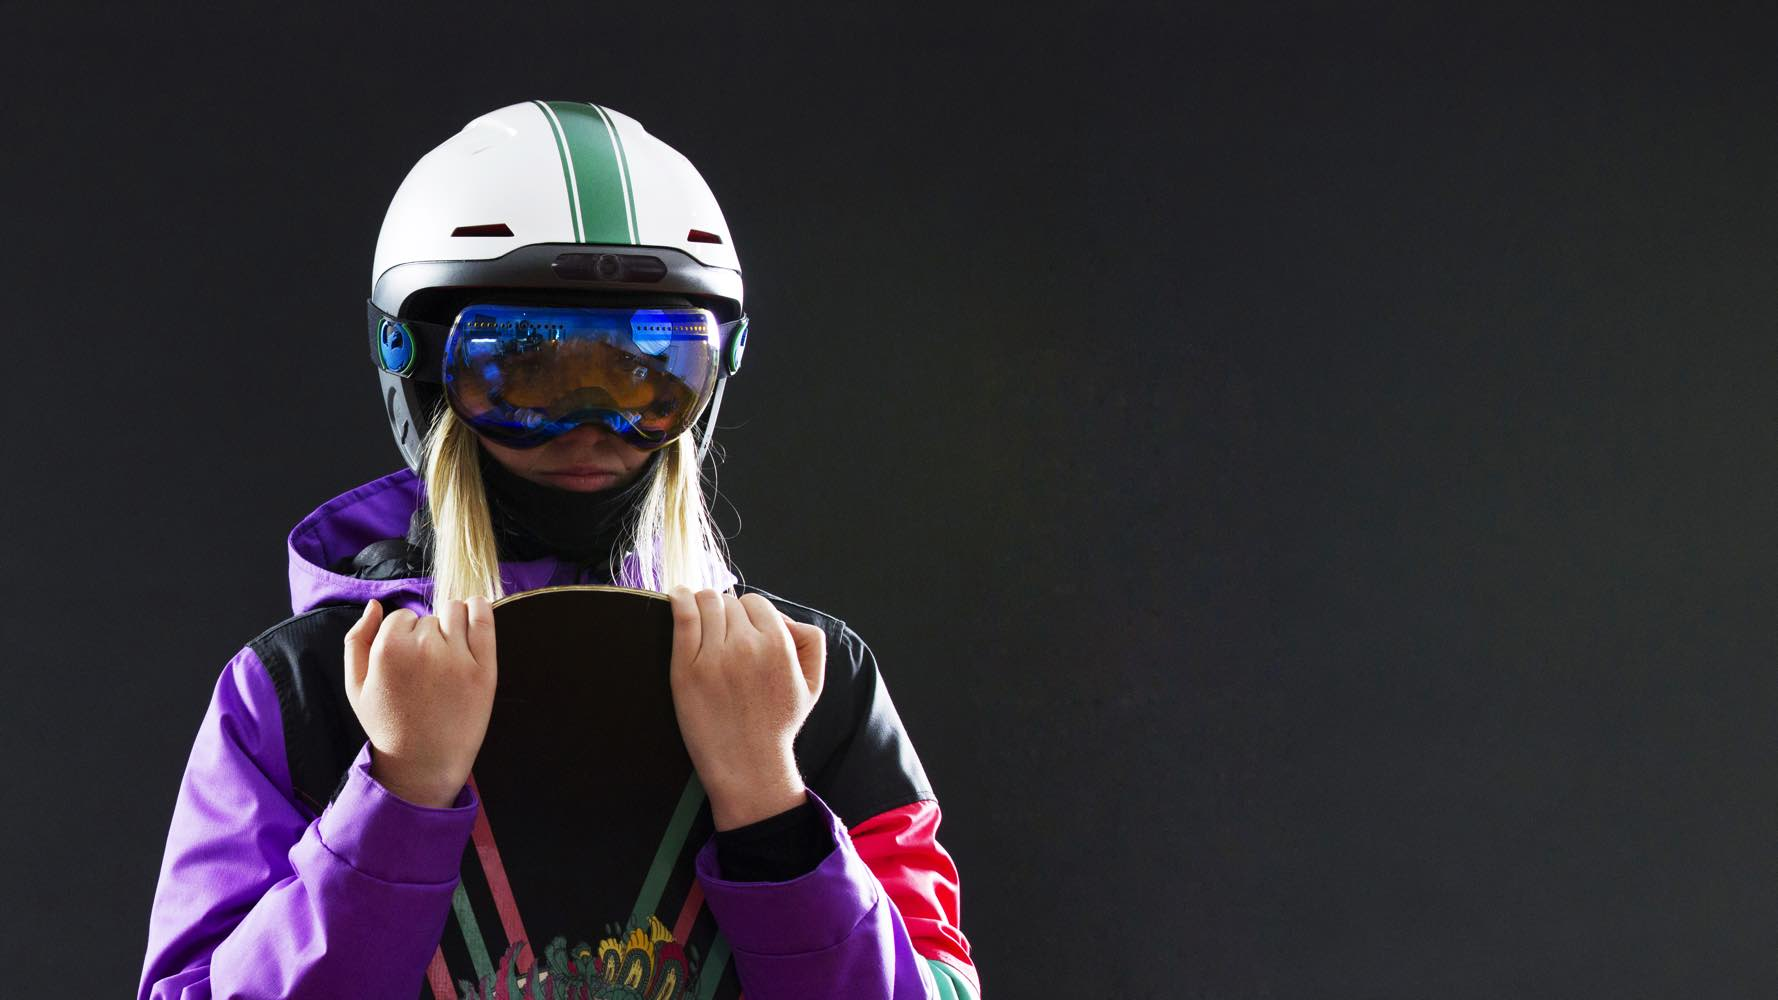 Forcite Alpine: the smart ski helmet